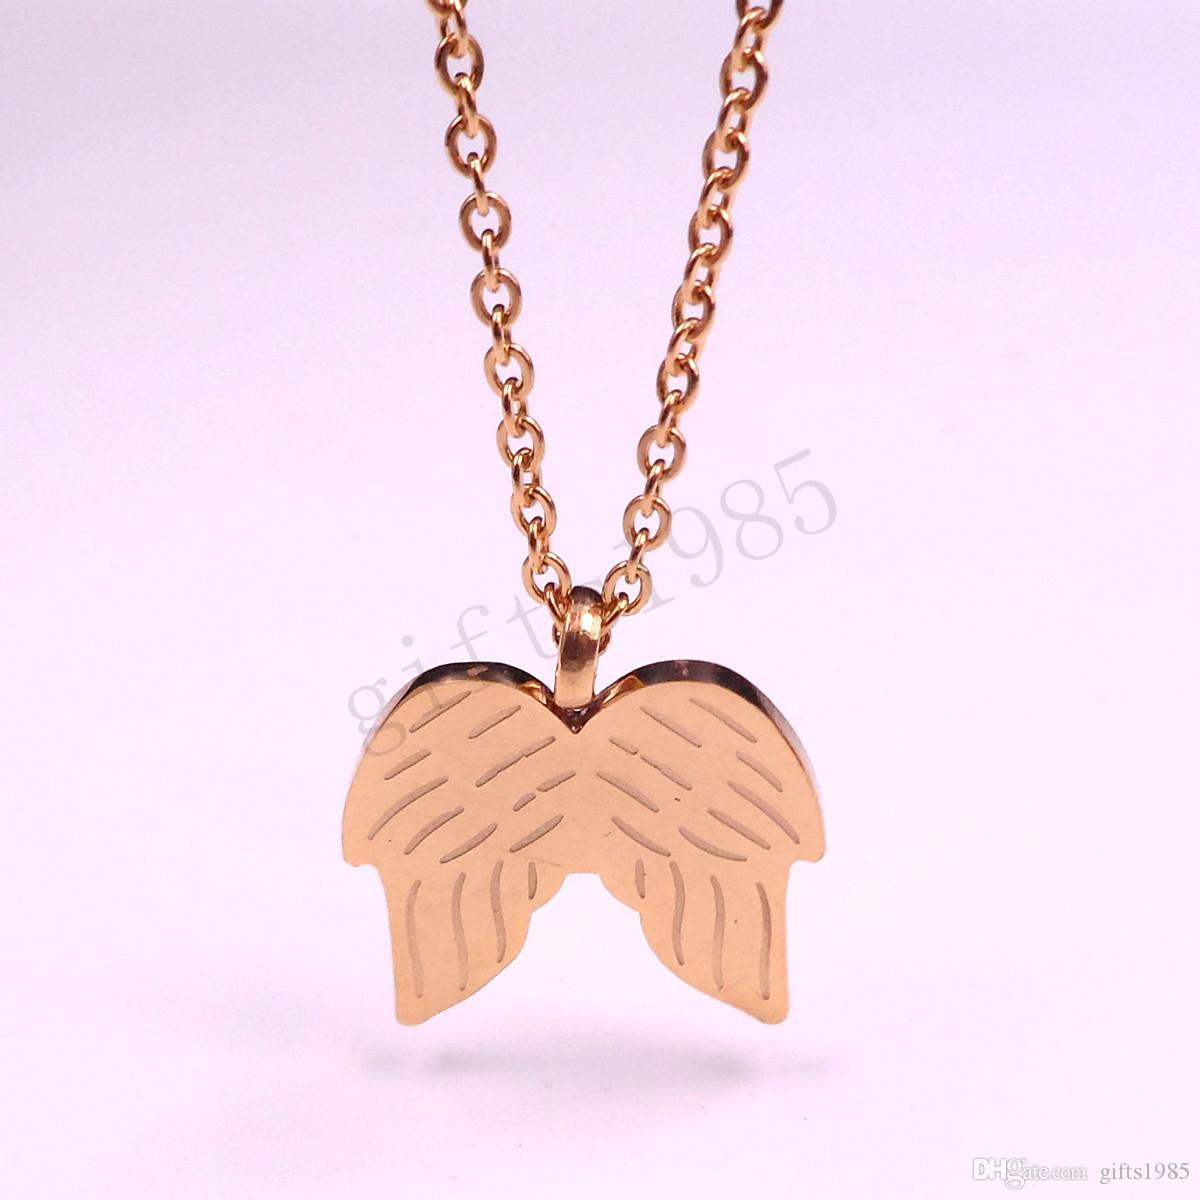 metalsmiths say collection angel collections signature pendant sterling wings anything silver canada products quickship